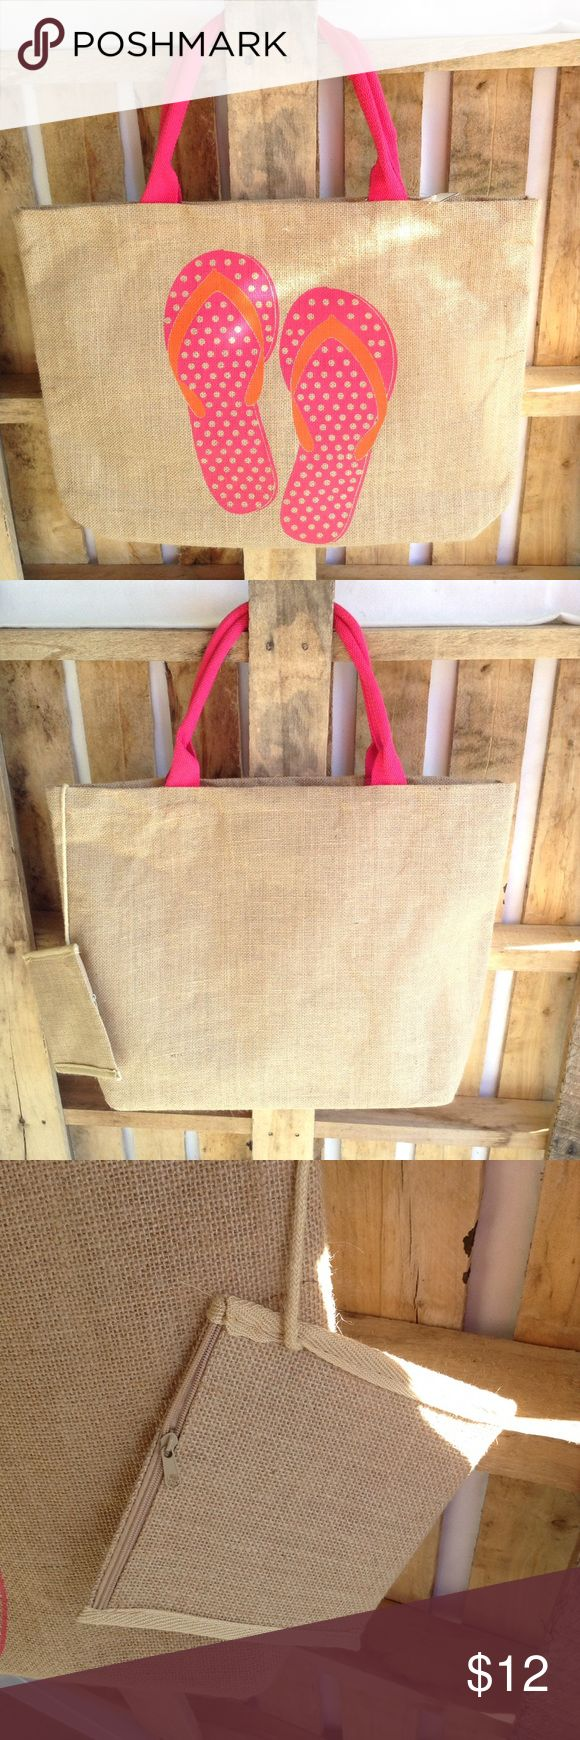 "Jute beach tote 👙☀️ Summer's coming!! 👏🏻☀️🏊🏻 Tote has inside and attached zippered pockets. The attached pocket is 6 x 6. Tote is 16"" tall, 21"" wide and 4.5"" wide bottom, and no worries with wet items! tote and pockets have plastic coating! 👍🏻 Bags Totes"